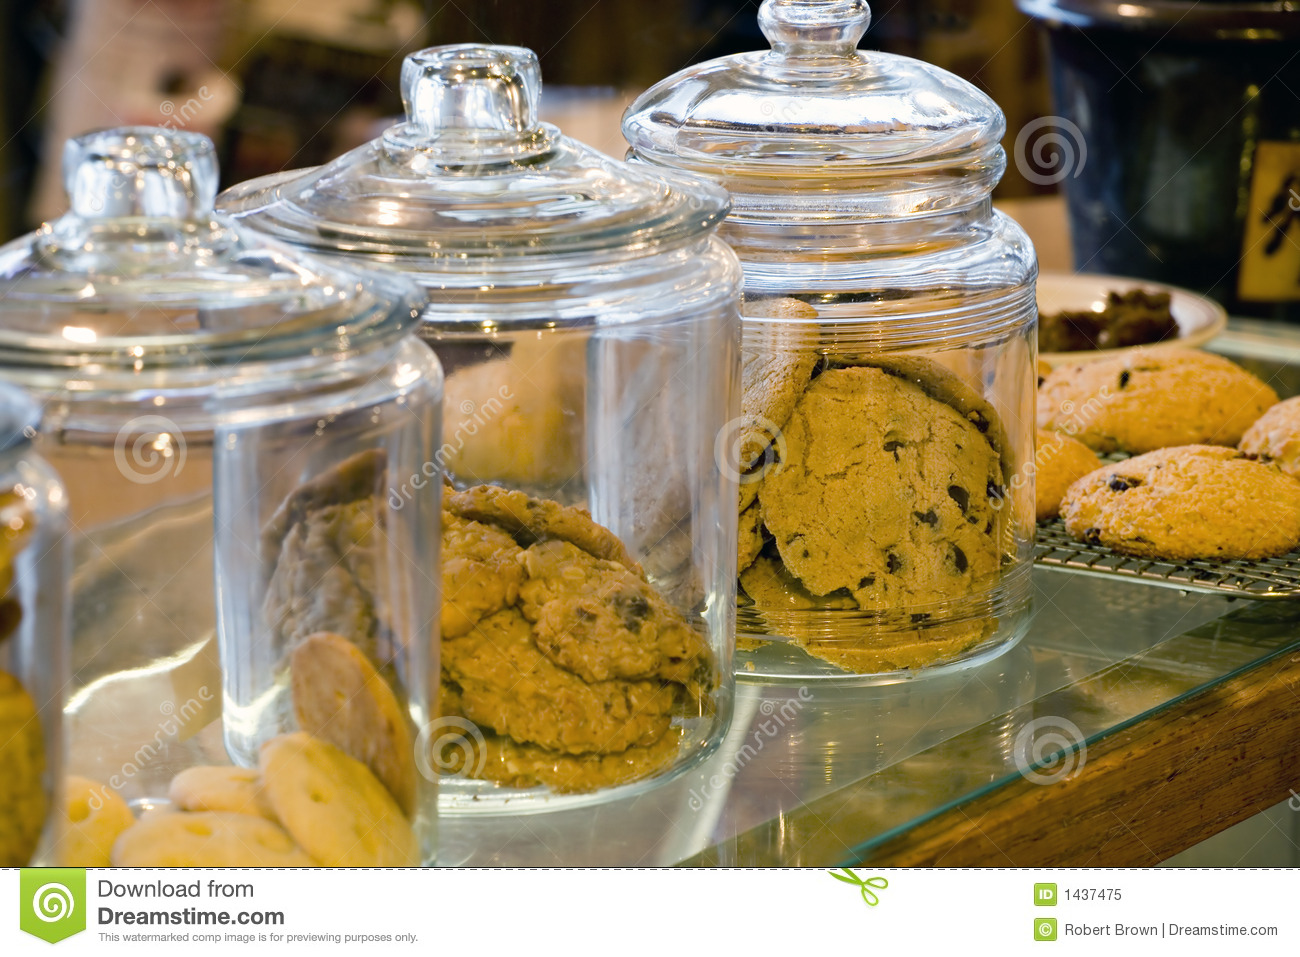 Glass Cookie Jars In A Coffee Shop Royalty Free Stock  : glass cookie jars coffee shop 1437475 from www.dreamstime.com size 1300 x 957 jpeg 405kB